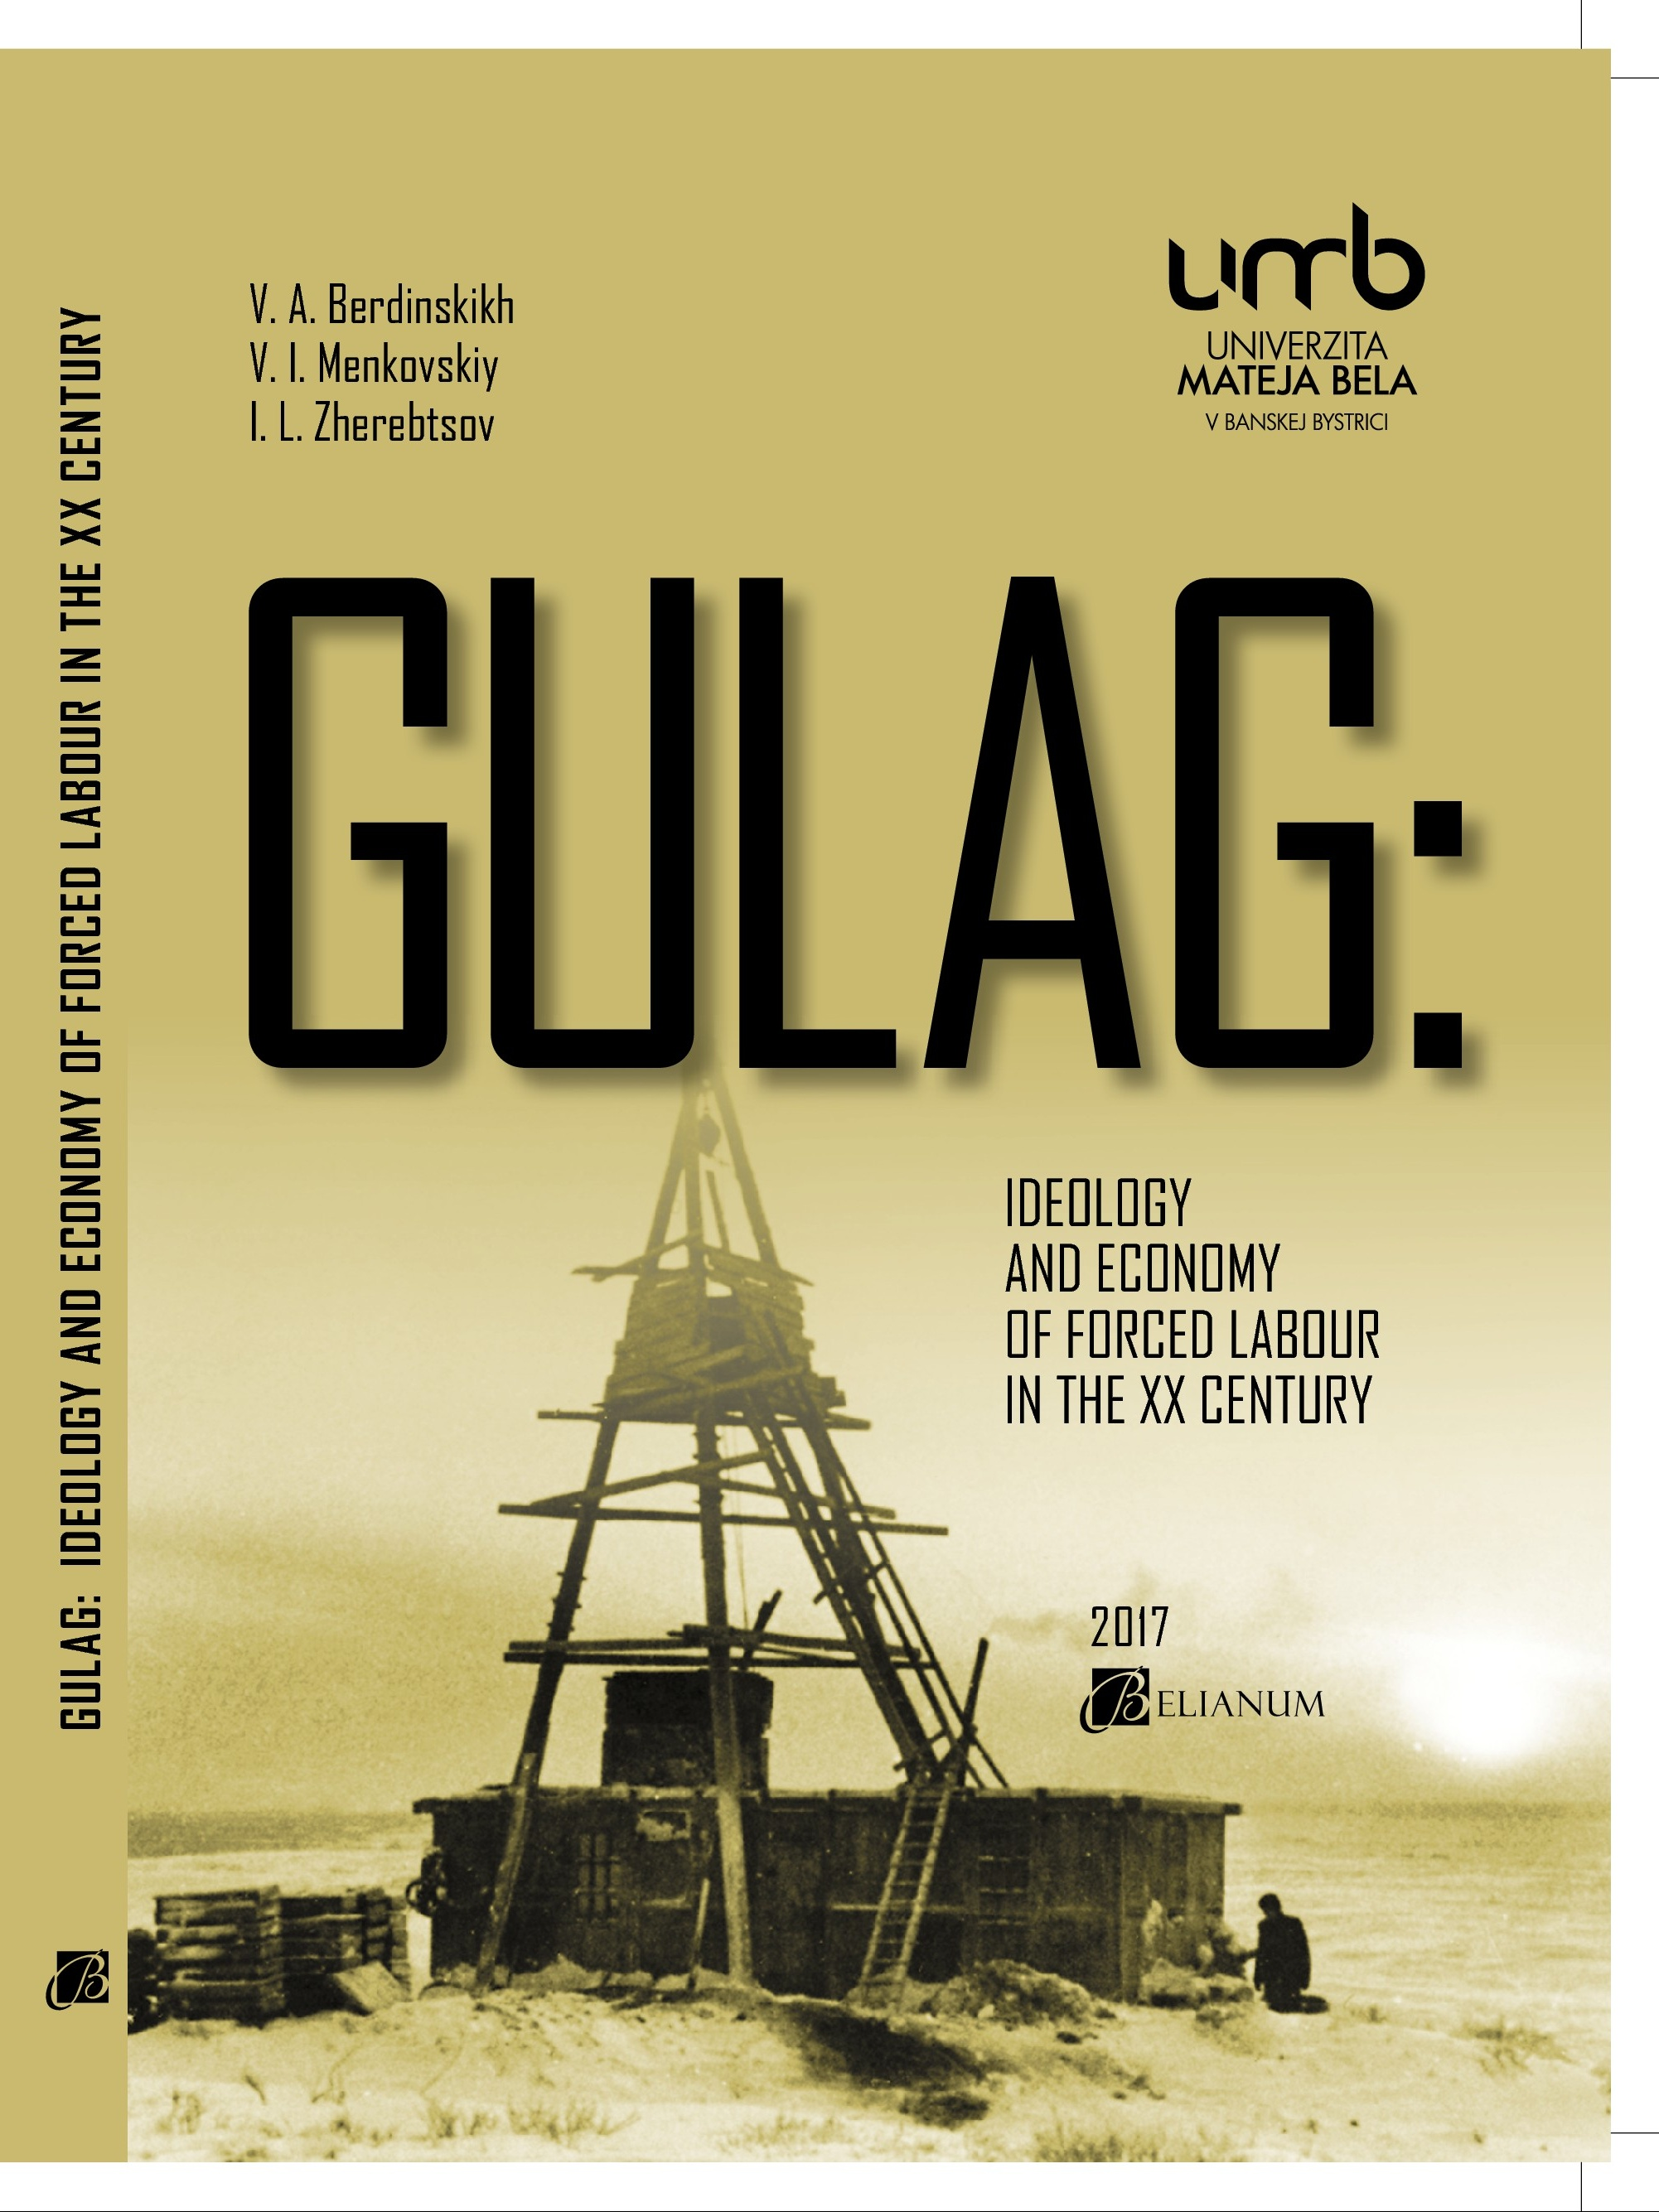 GULAG: IDEOLOGY AND ECONOMY OF FORCED LABOUR IN THE XX CENTURY